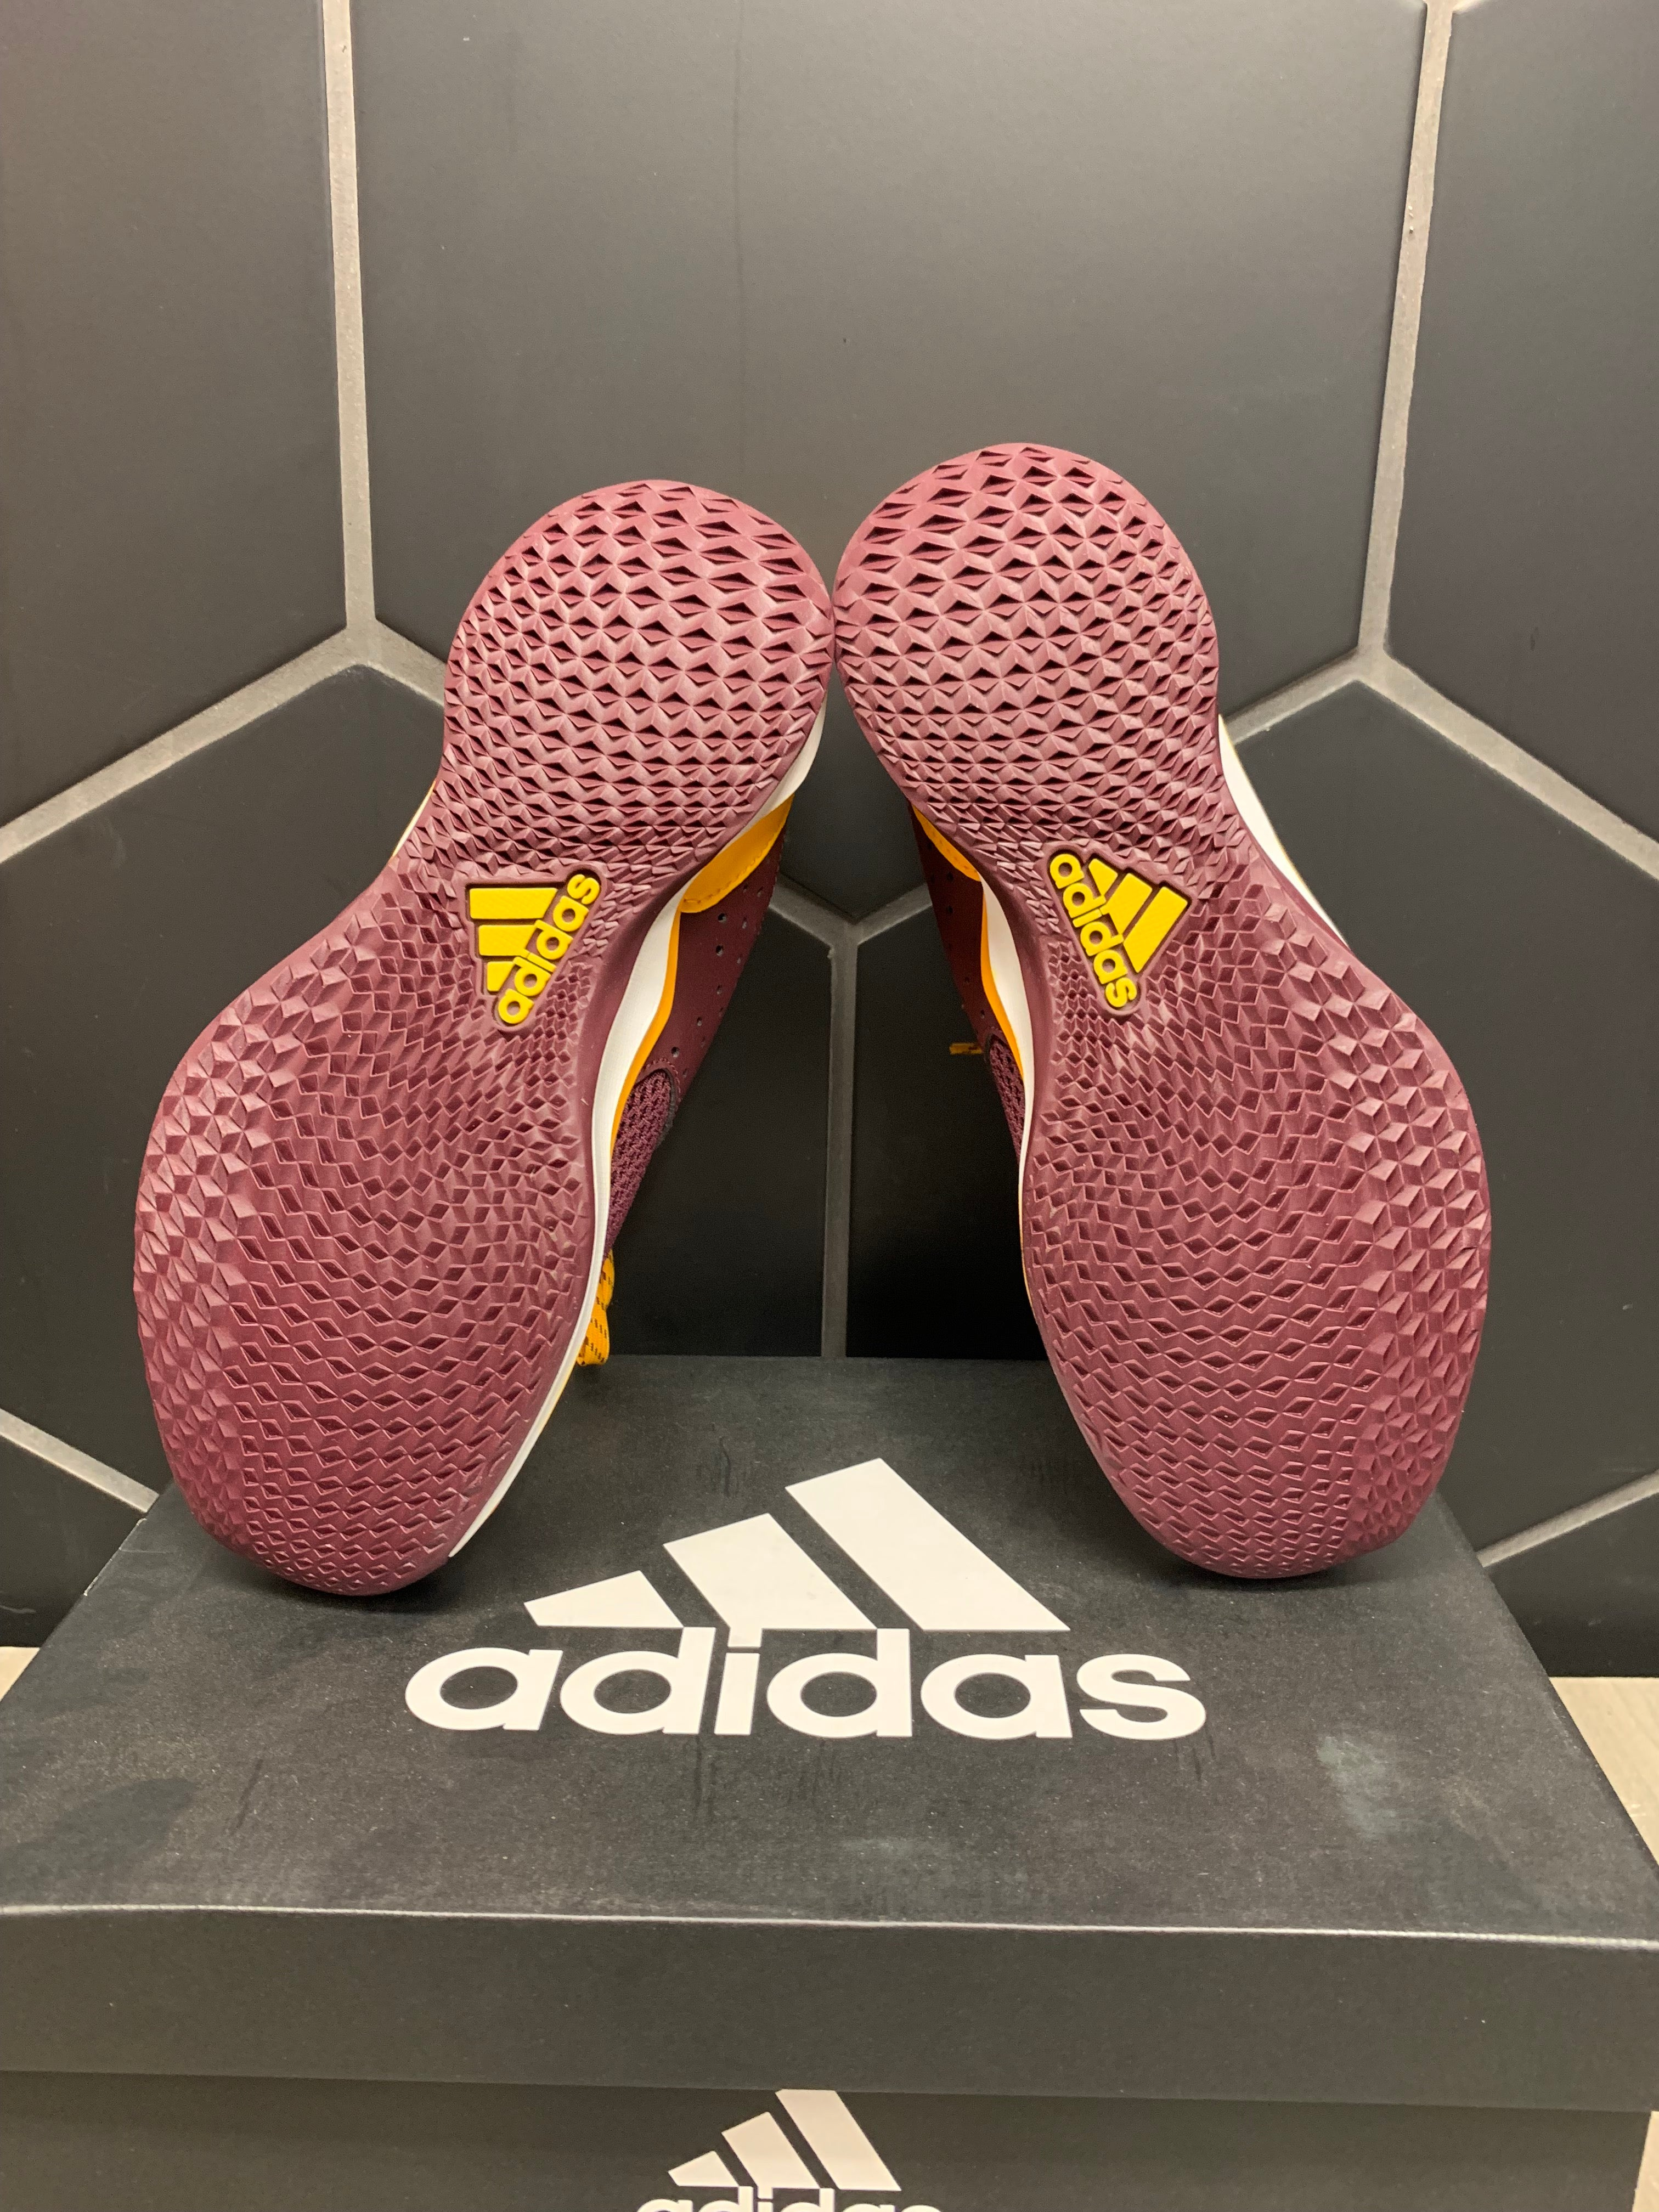 New W/ Box! Adidas Speed Trainer 3.0 ASU Baseball Cleats (Multiple)